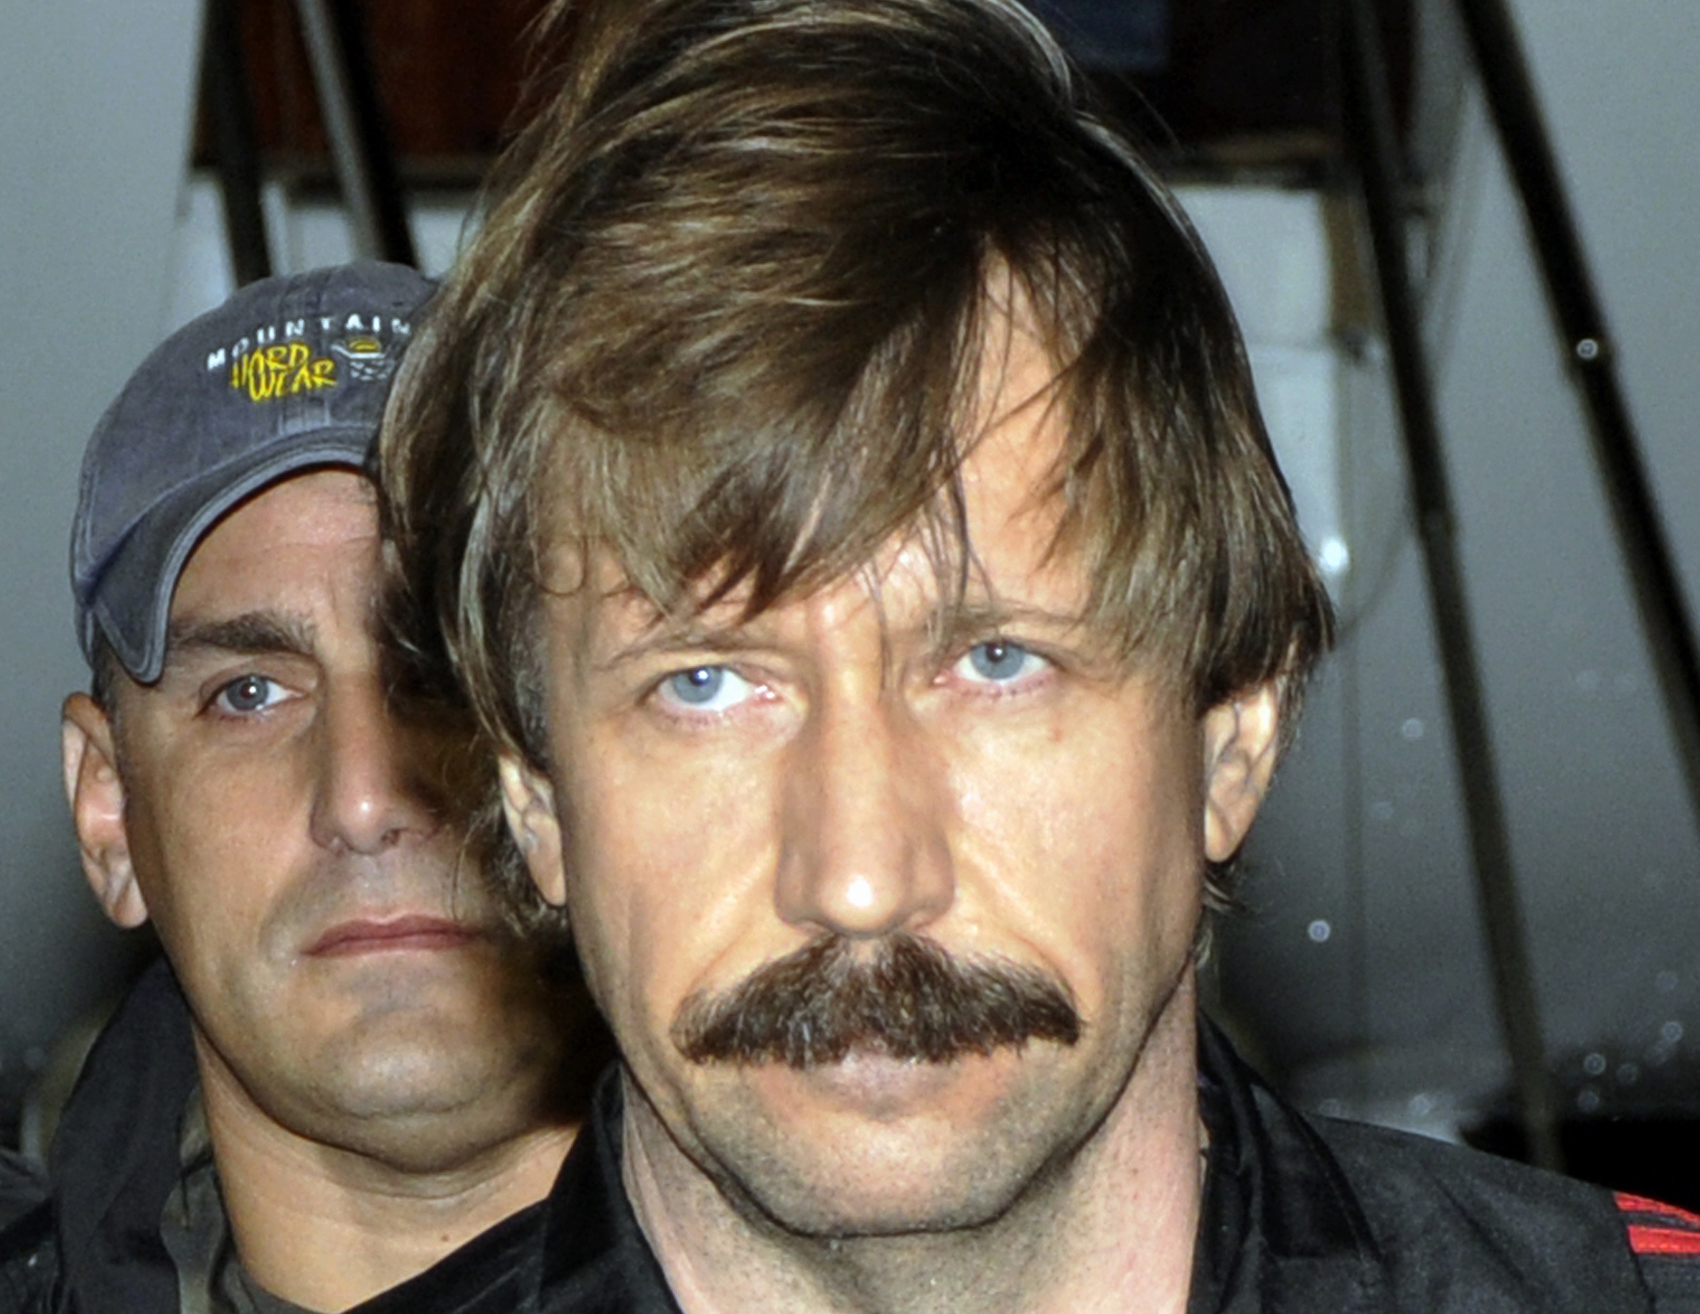 FILE - This Tuesday Nov. 16, 2010 file photo provided by the Drug Enforcement Administration shows Russian arms trafficker Viktor Bout in U.S. custody after being flown from Bangkok to New York in a chartered U.S. plane. The ex-Soviet officer turned arms dealer faces a mandatory minimum of 25 years in prison at sentencing Thursday, April 5, 2012. (AP Photo/Drug Enforcement Administration, File)